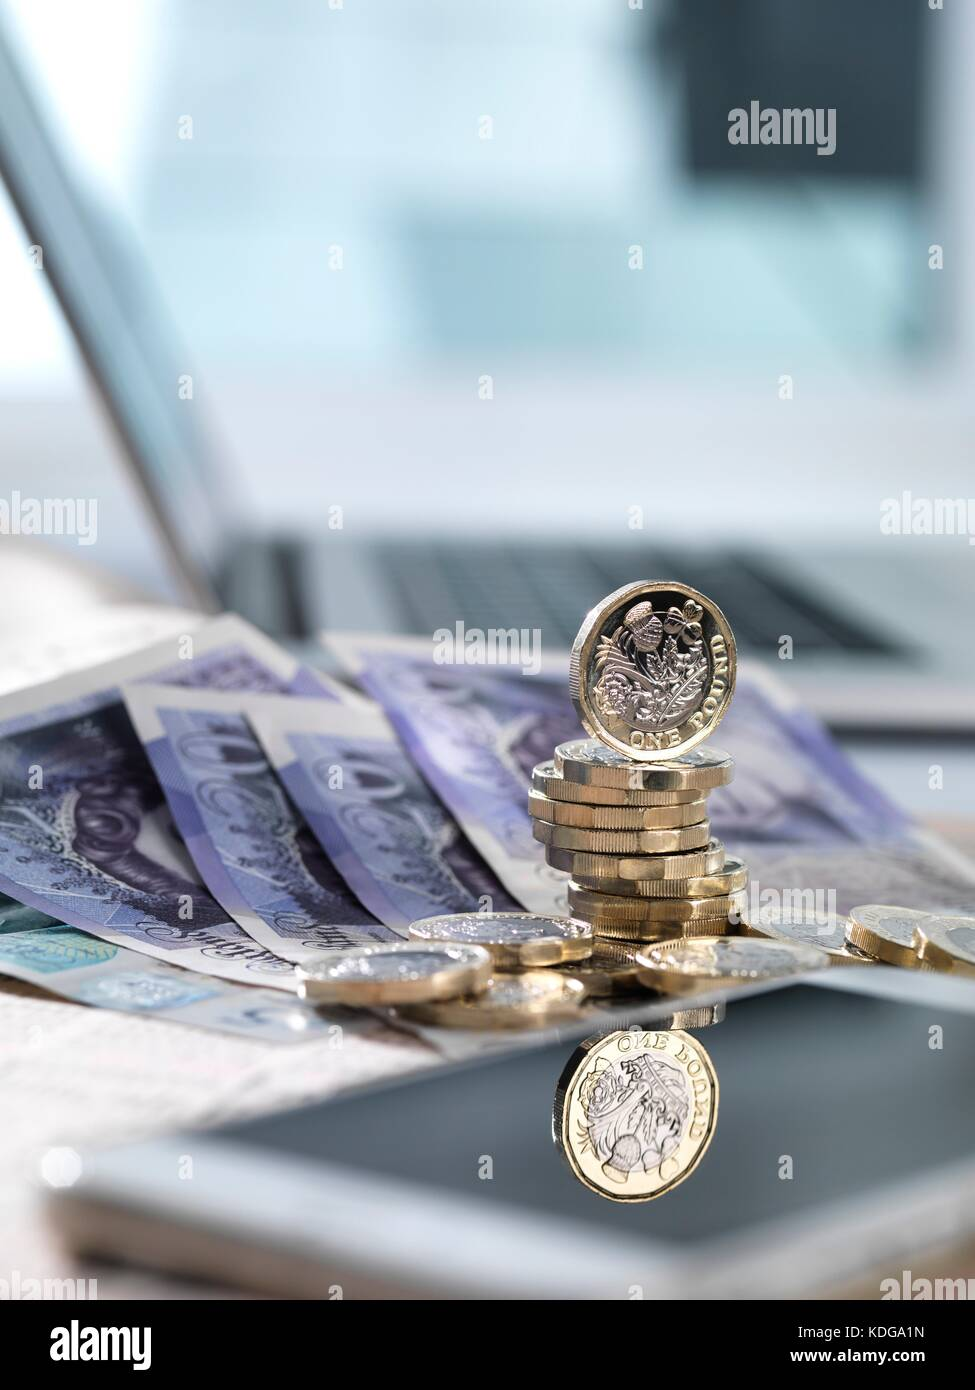 Online investments, conceptual image. - Stock Image